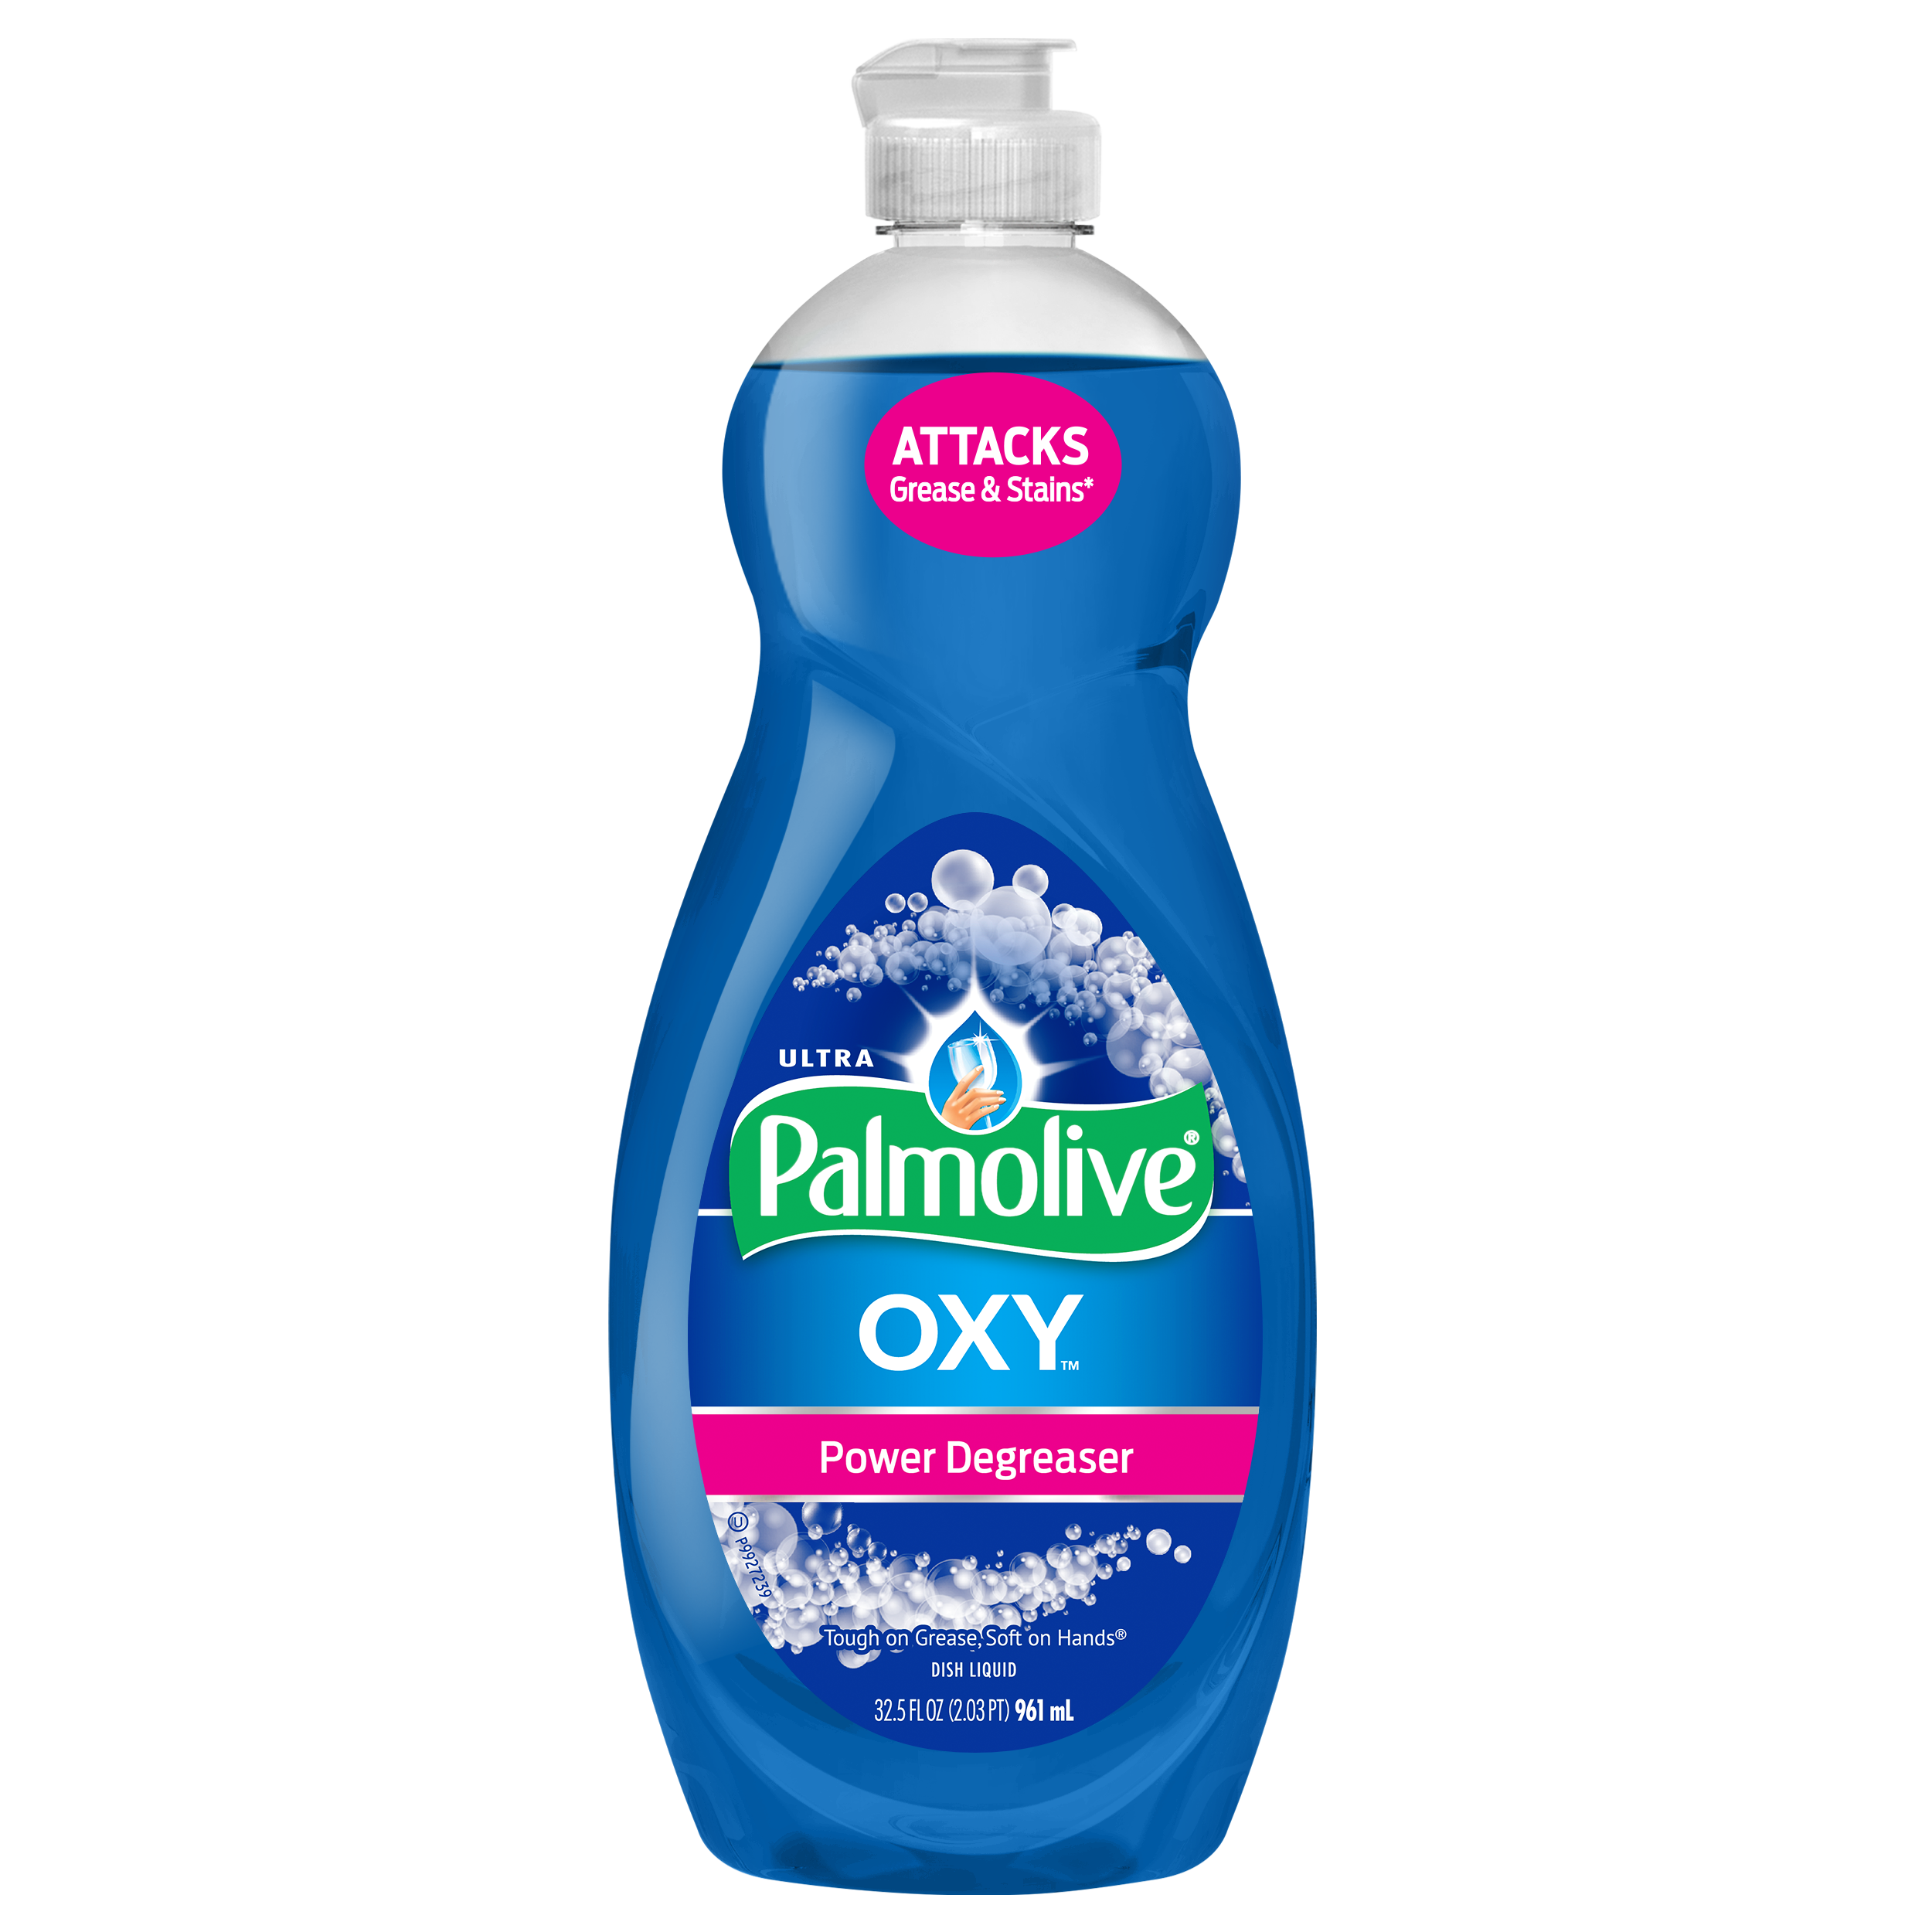 (1 Pack) Palmolive Ultra Dishwashing Liquid Dish Soap, Oxy Power Degreaser – 32.5 fl oz